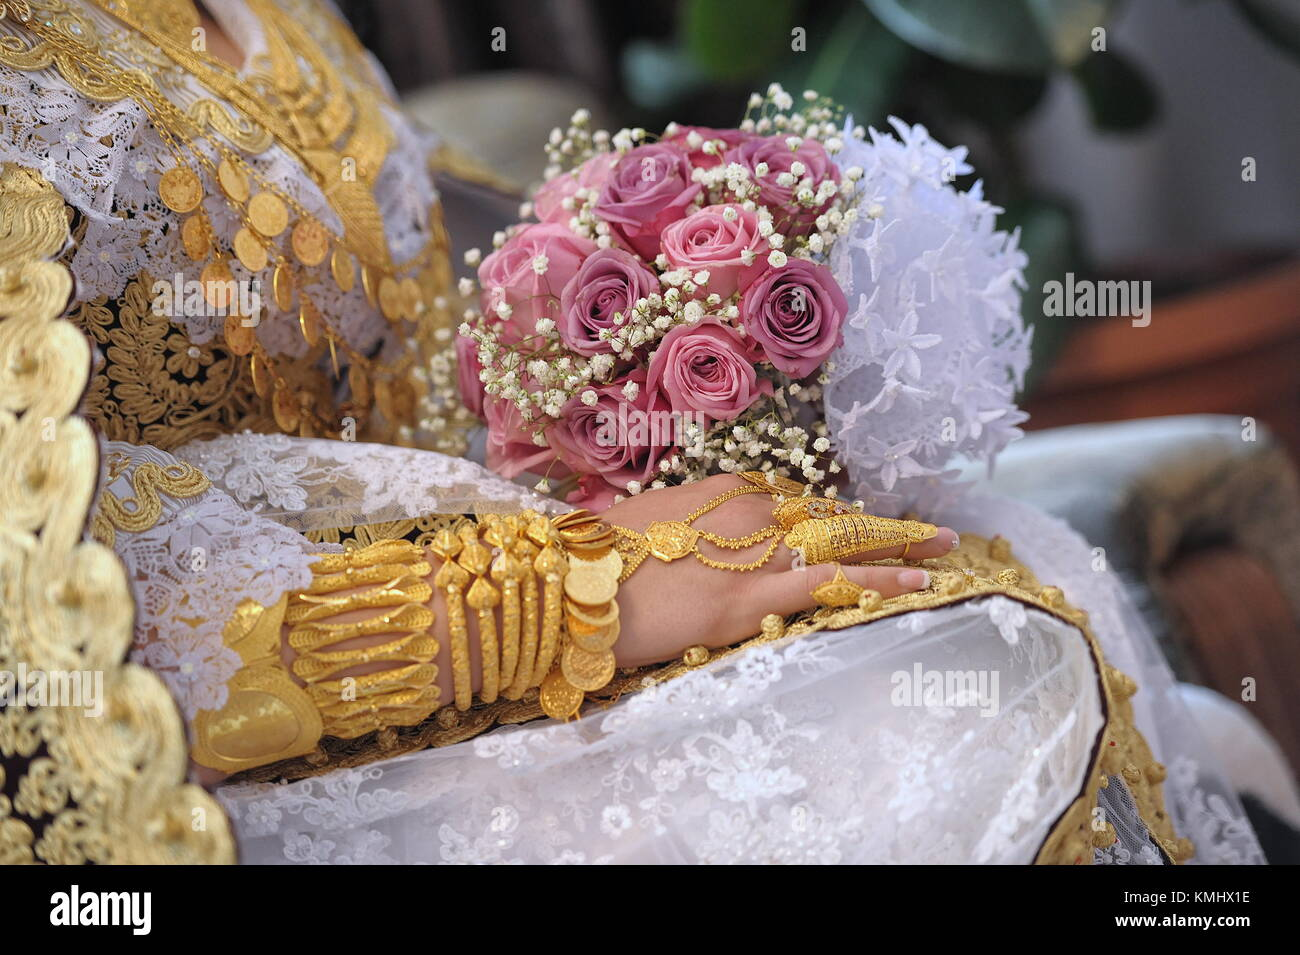 Gold jewelry and roses on the hands of a Muslim bride - Stock Image